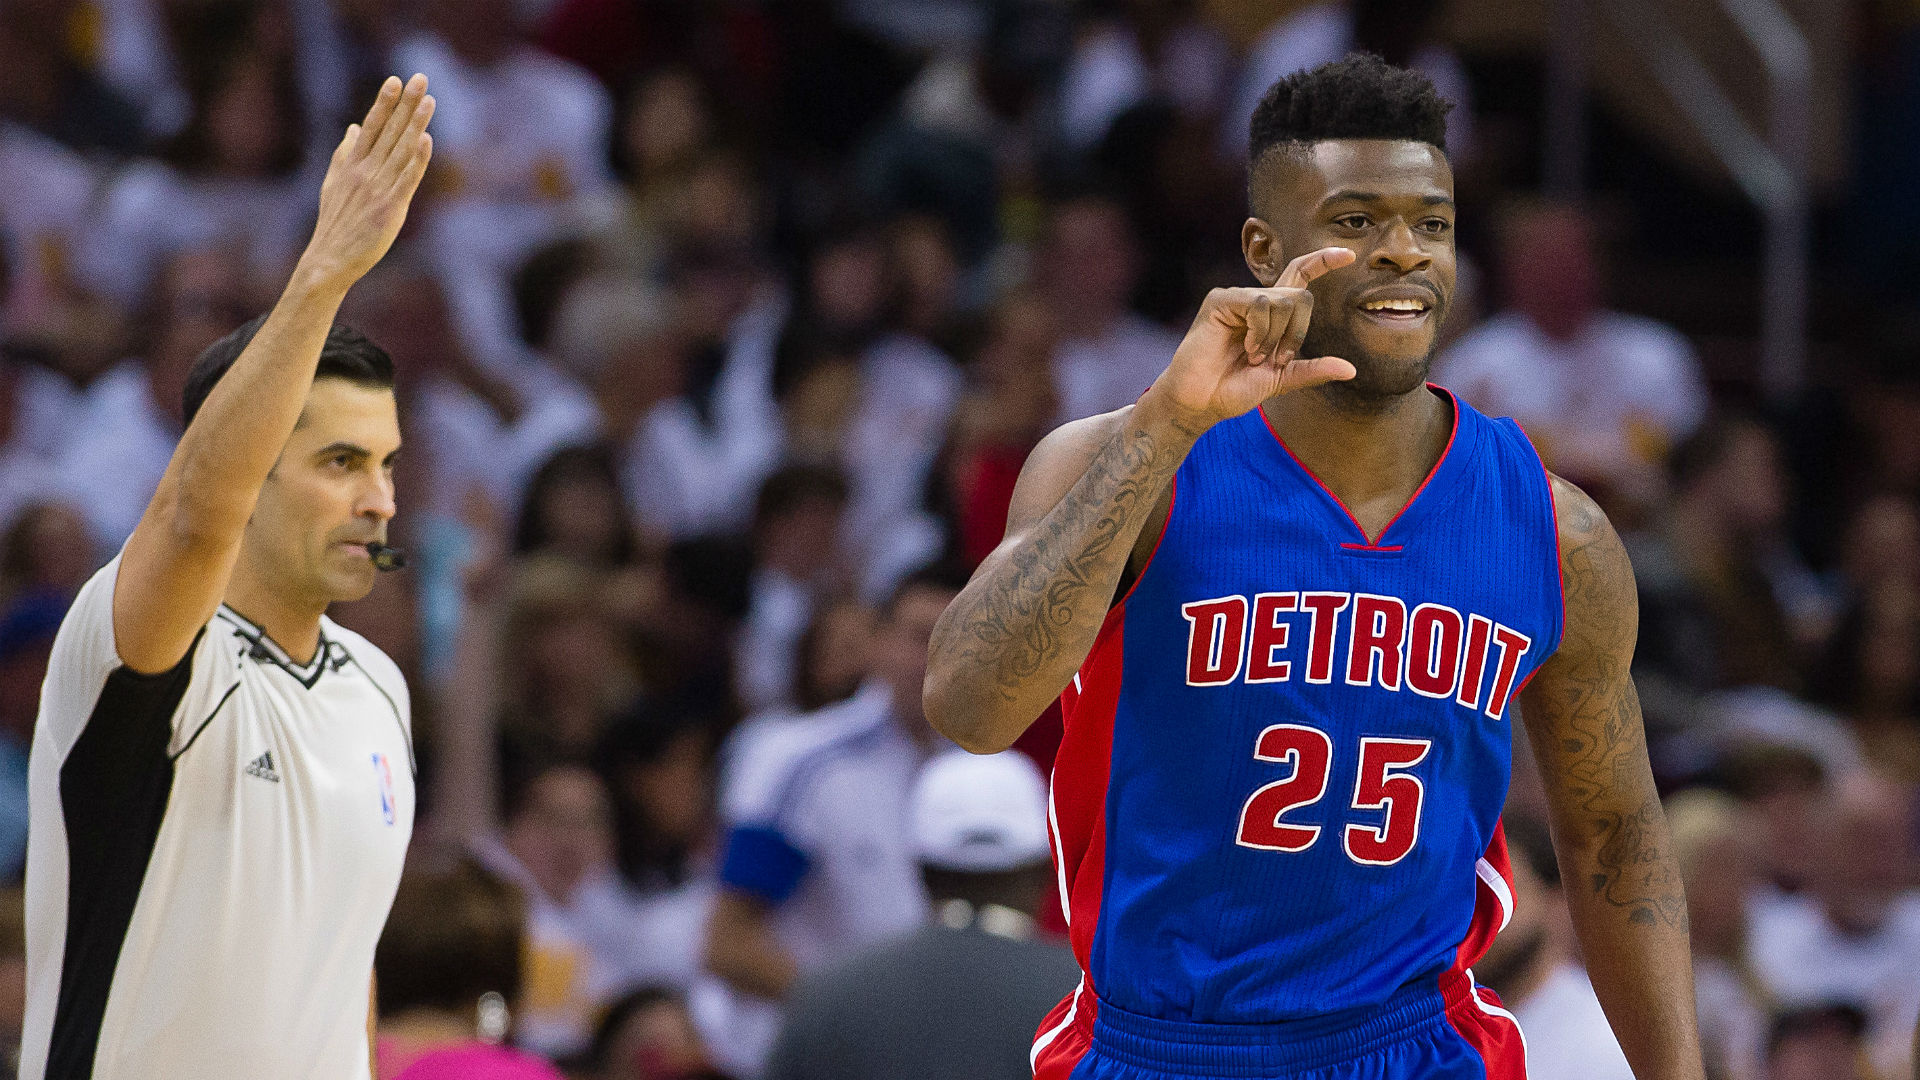 Detroit Pistons guard Reggie Bullock suspended for drug violation